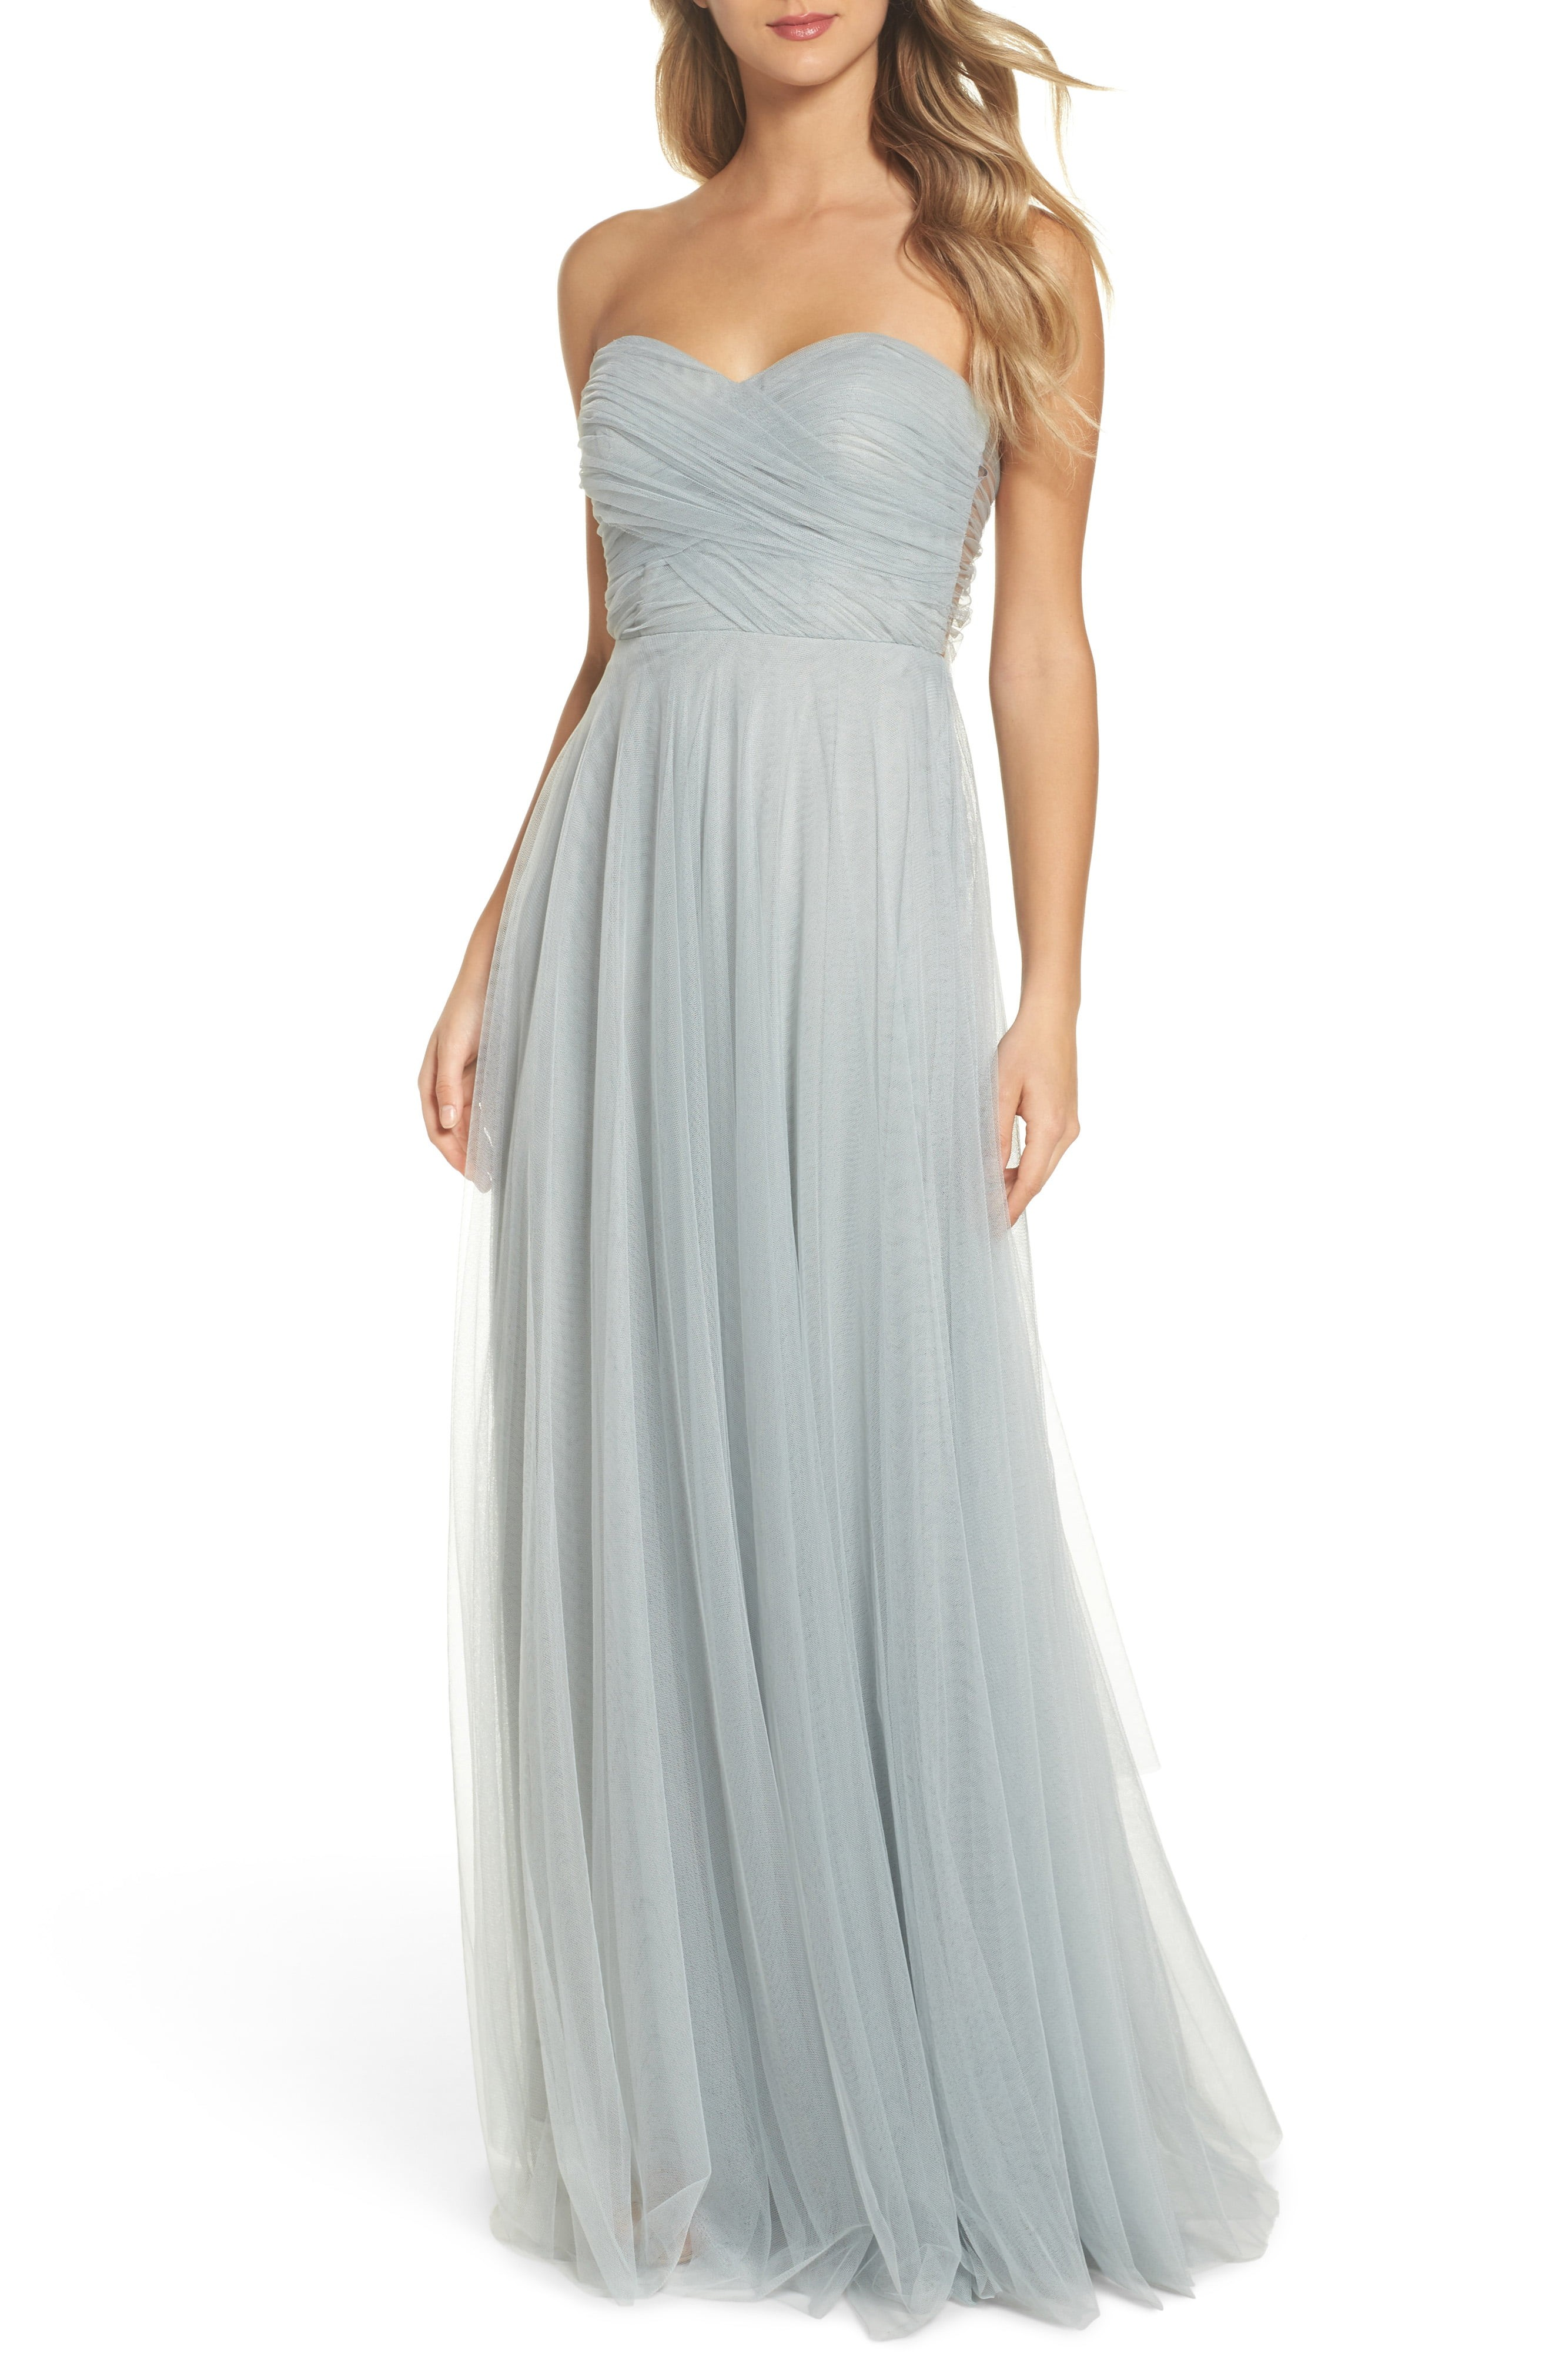 Mint mismatched bridesmaid dresses each of the lines im showing have many dress options beyond what is shown here so that you can really customize the silhouettes ombrellifo Choice Image